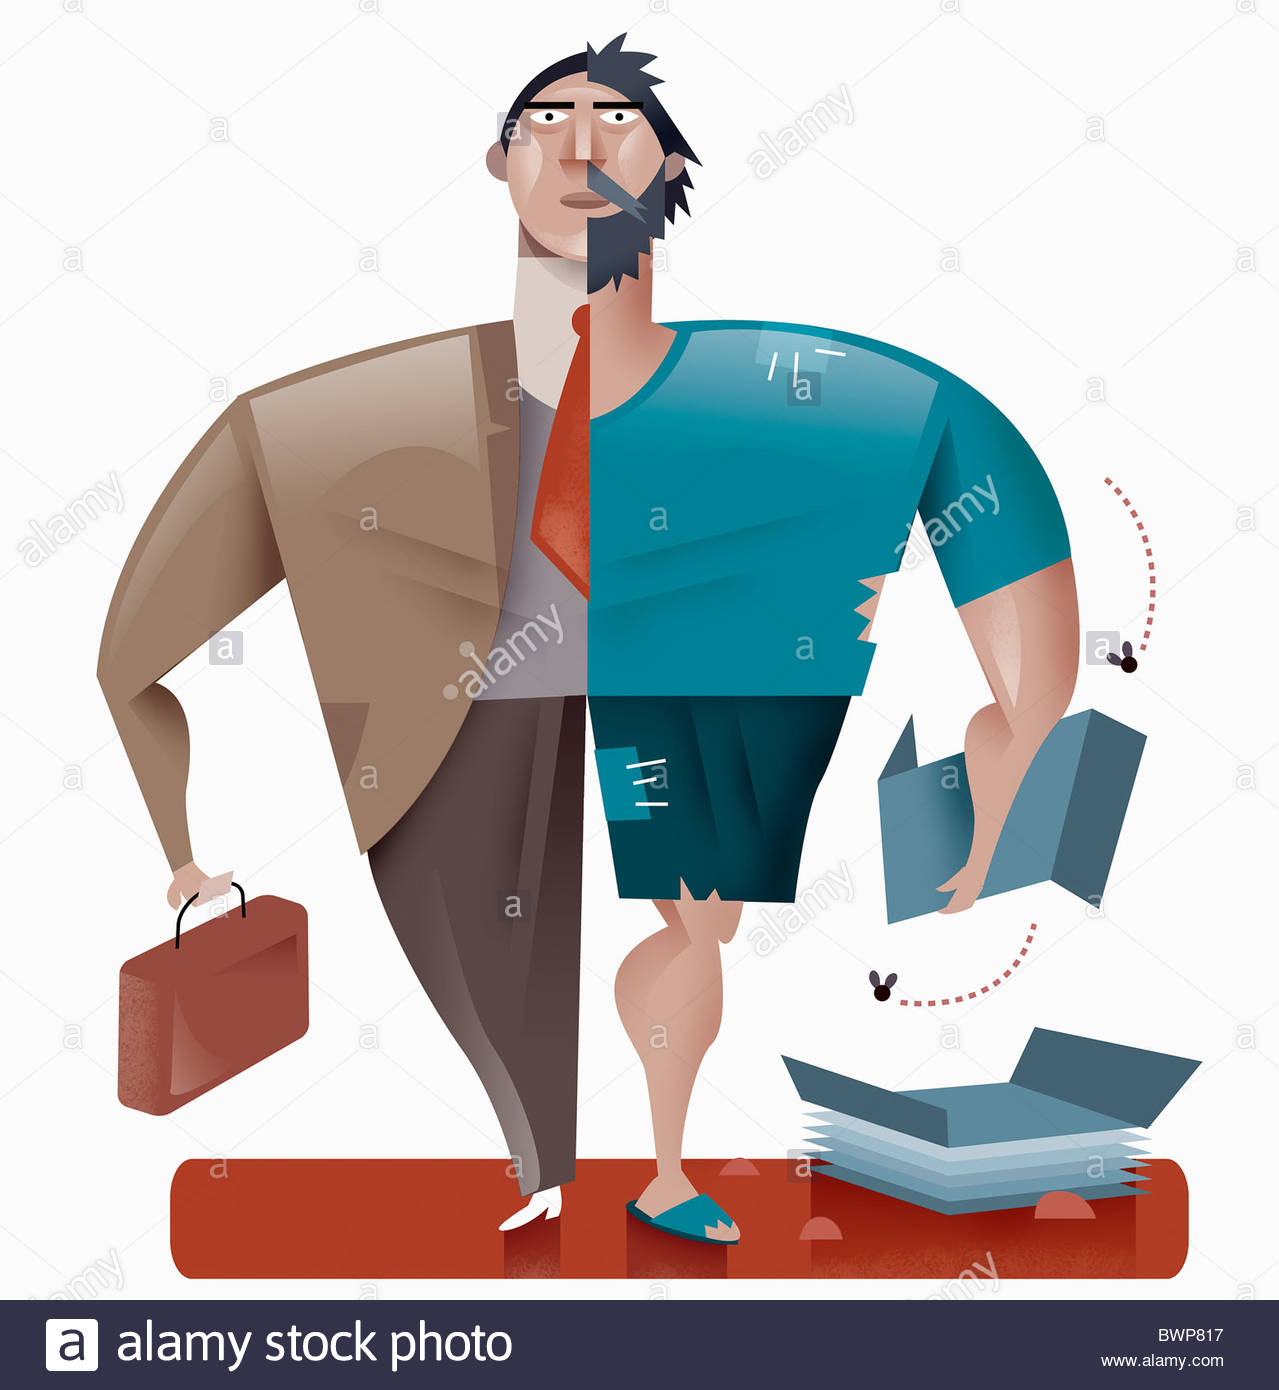 Rich and poor stock photos rich and poor stock images alamy half rich man half poor man stock image sciox Images